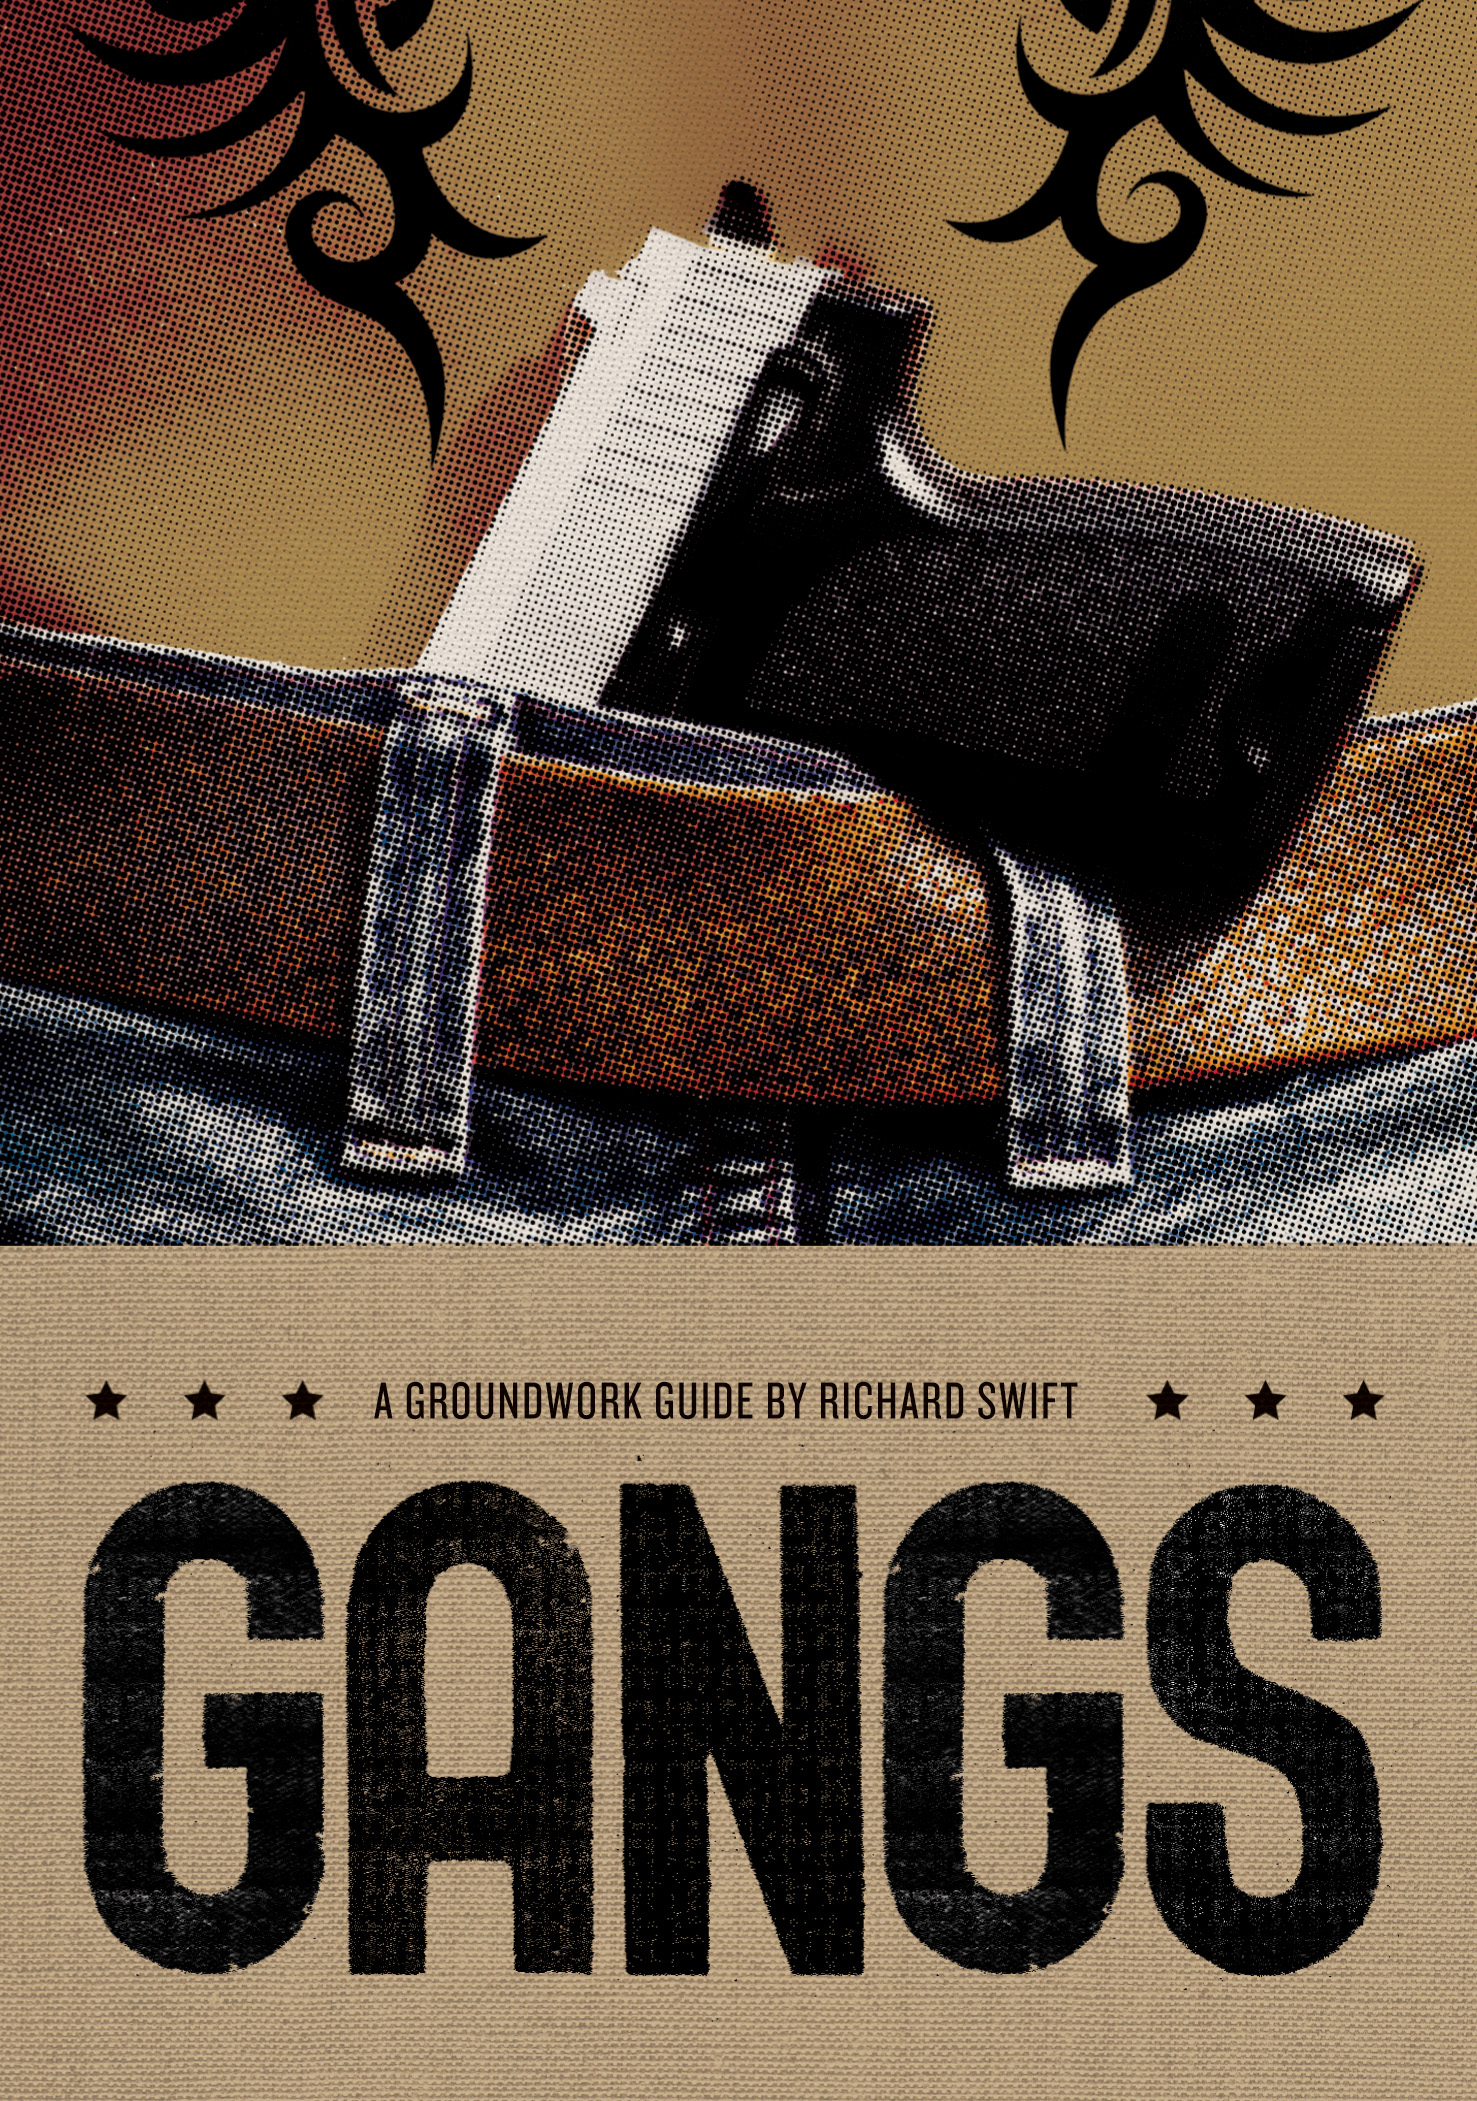 Gangs A Groundwork Guide